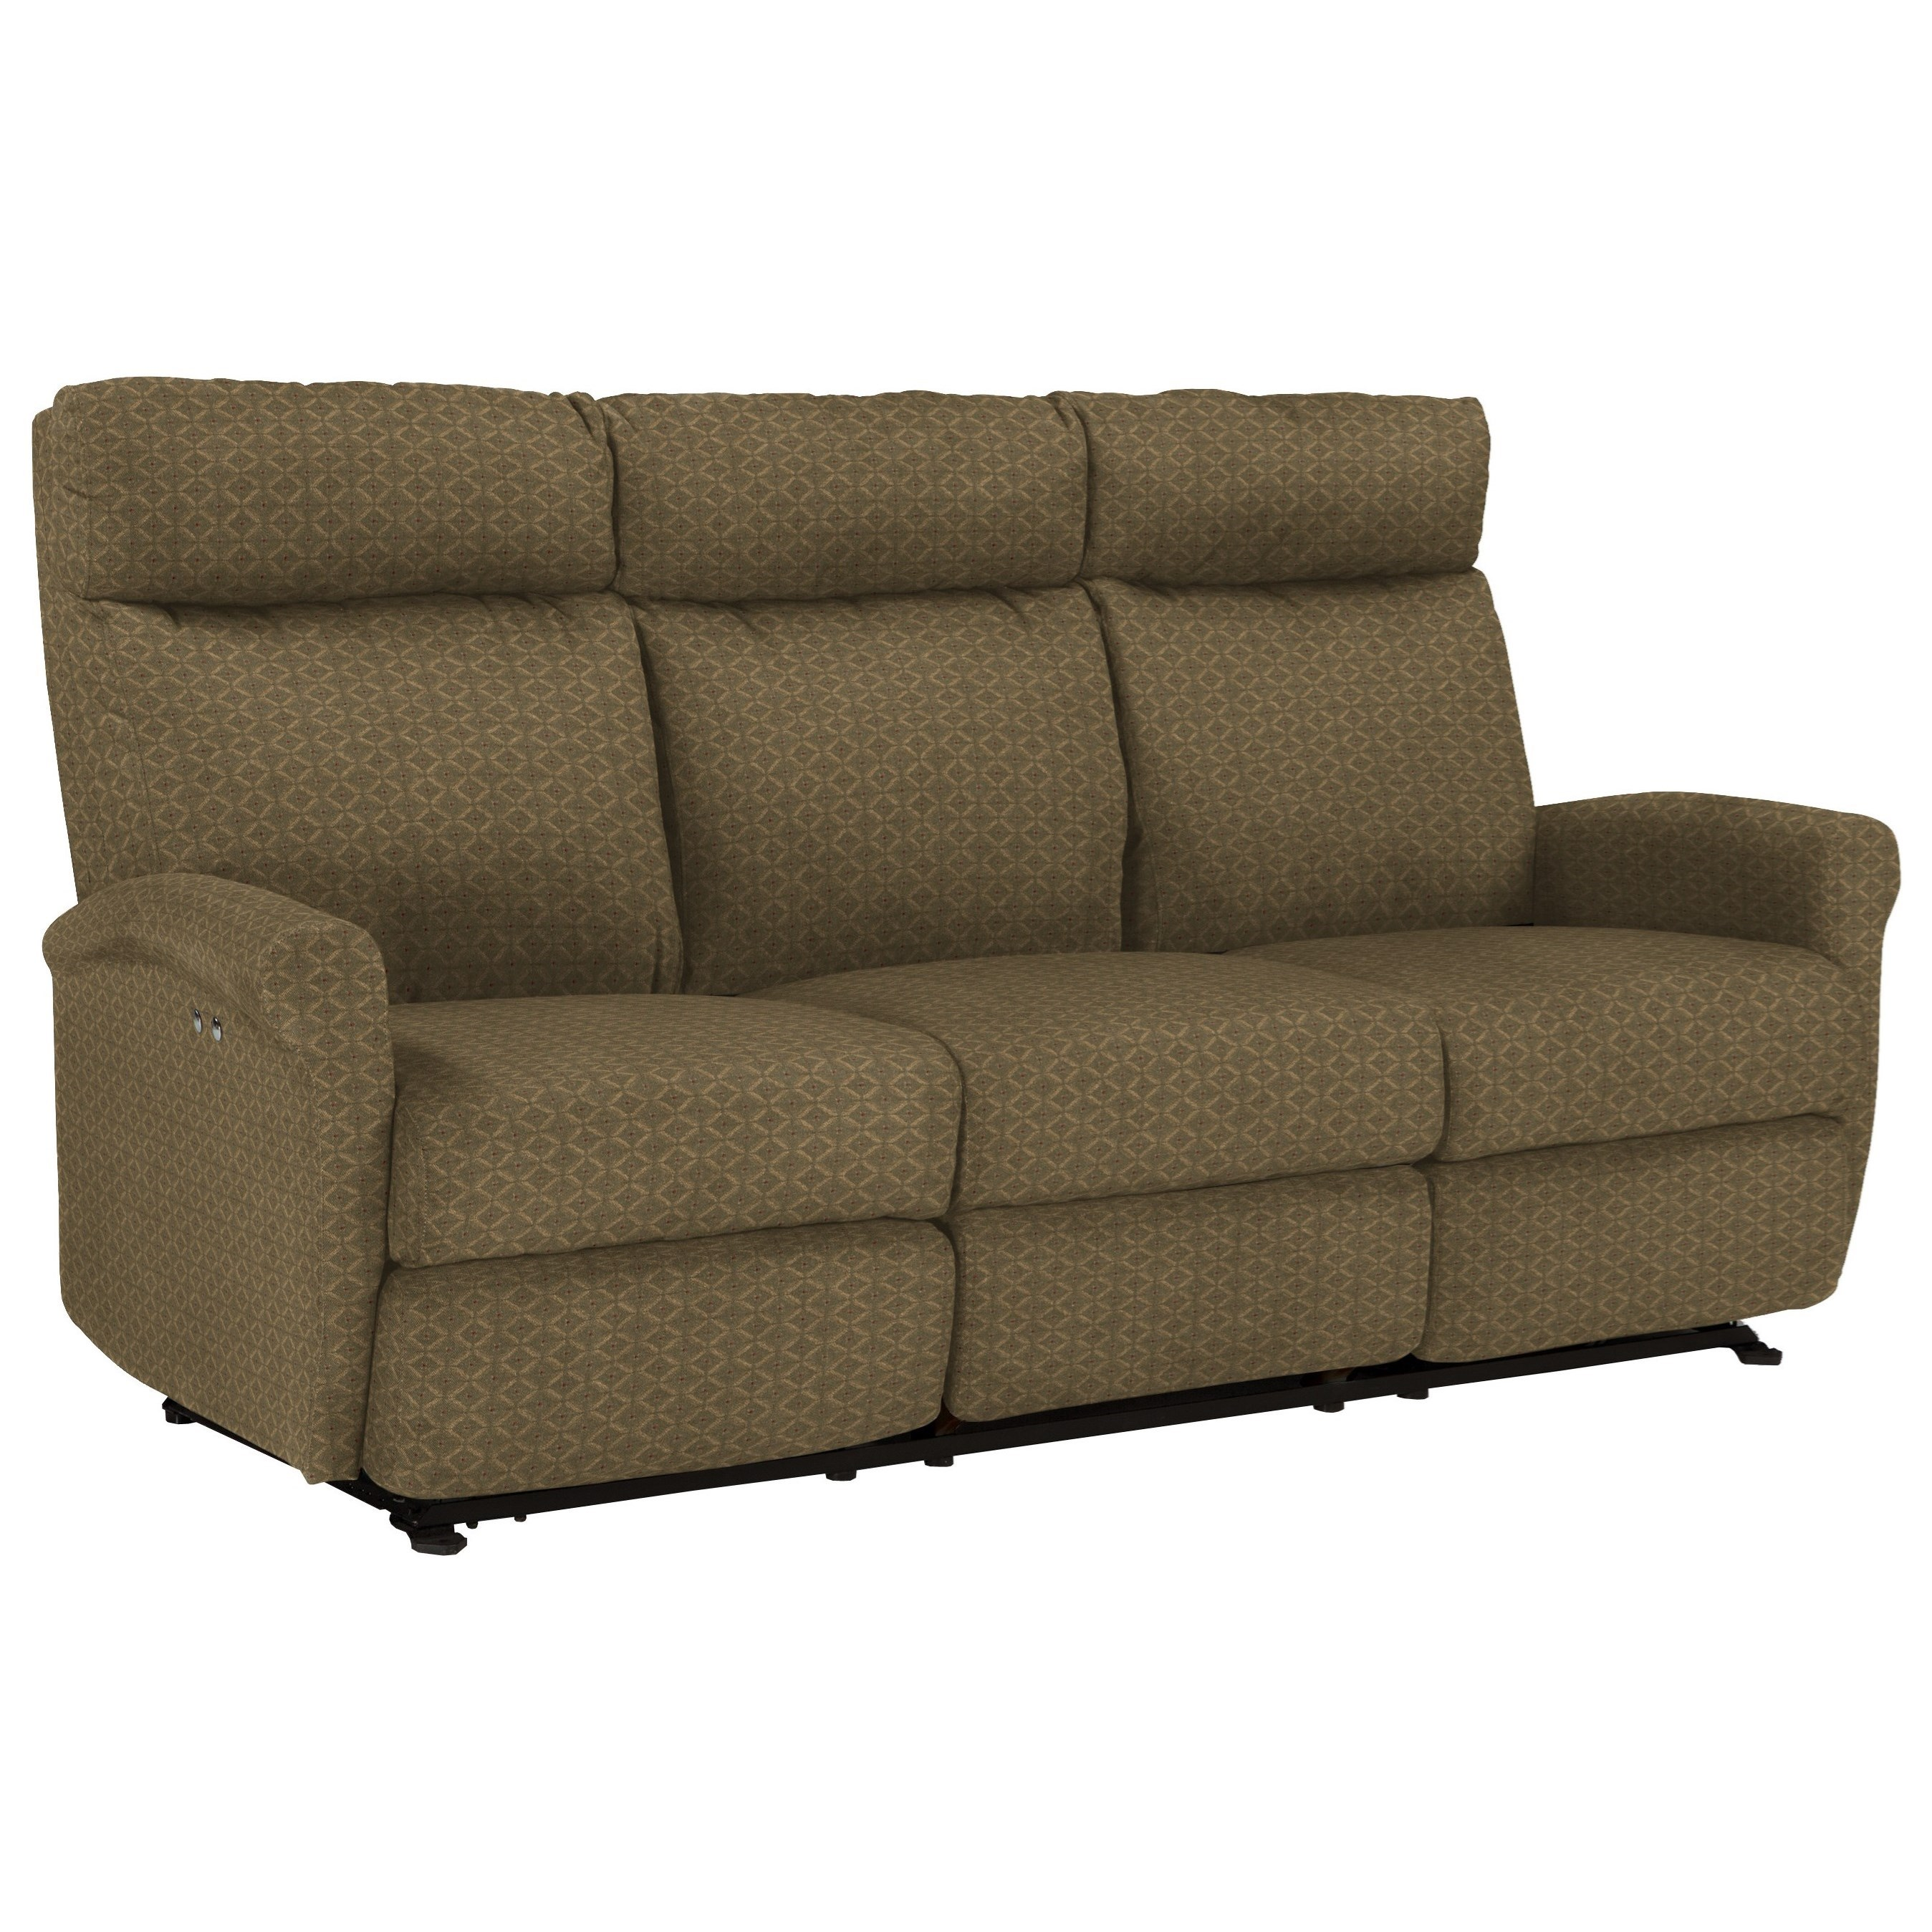 Best Home Furnishings Codie Reclining Sofa - Item Number: 1002935112-18021